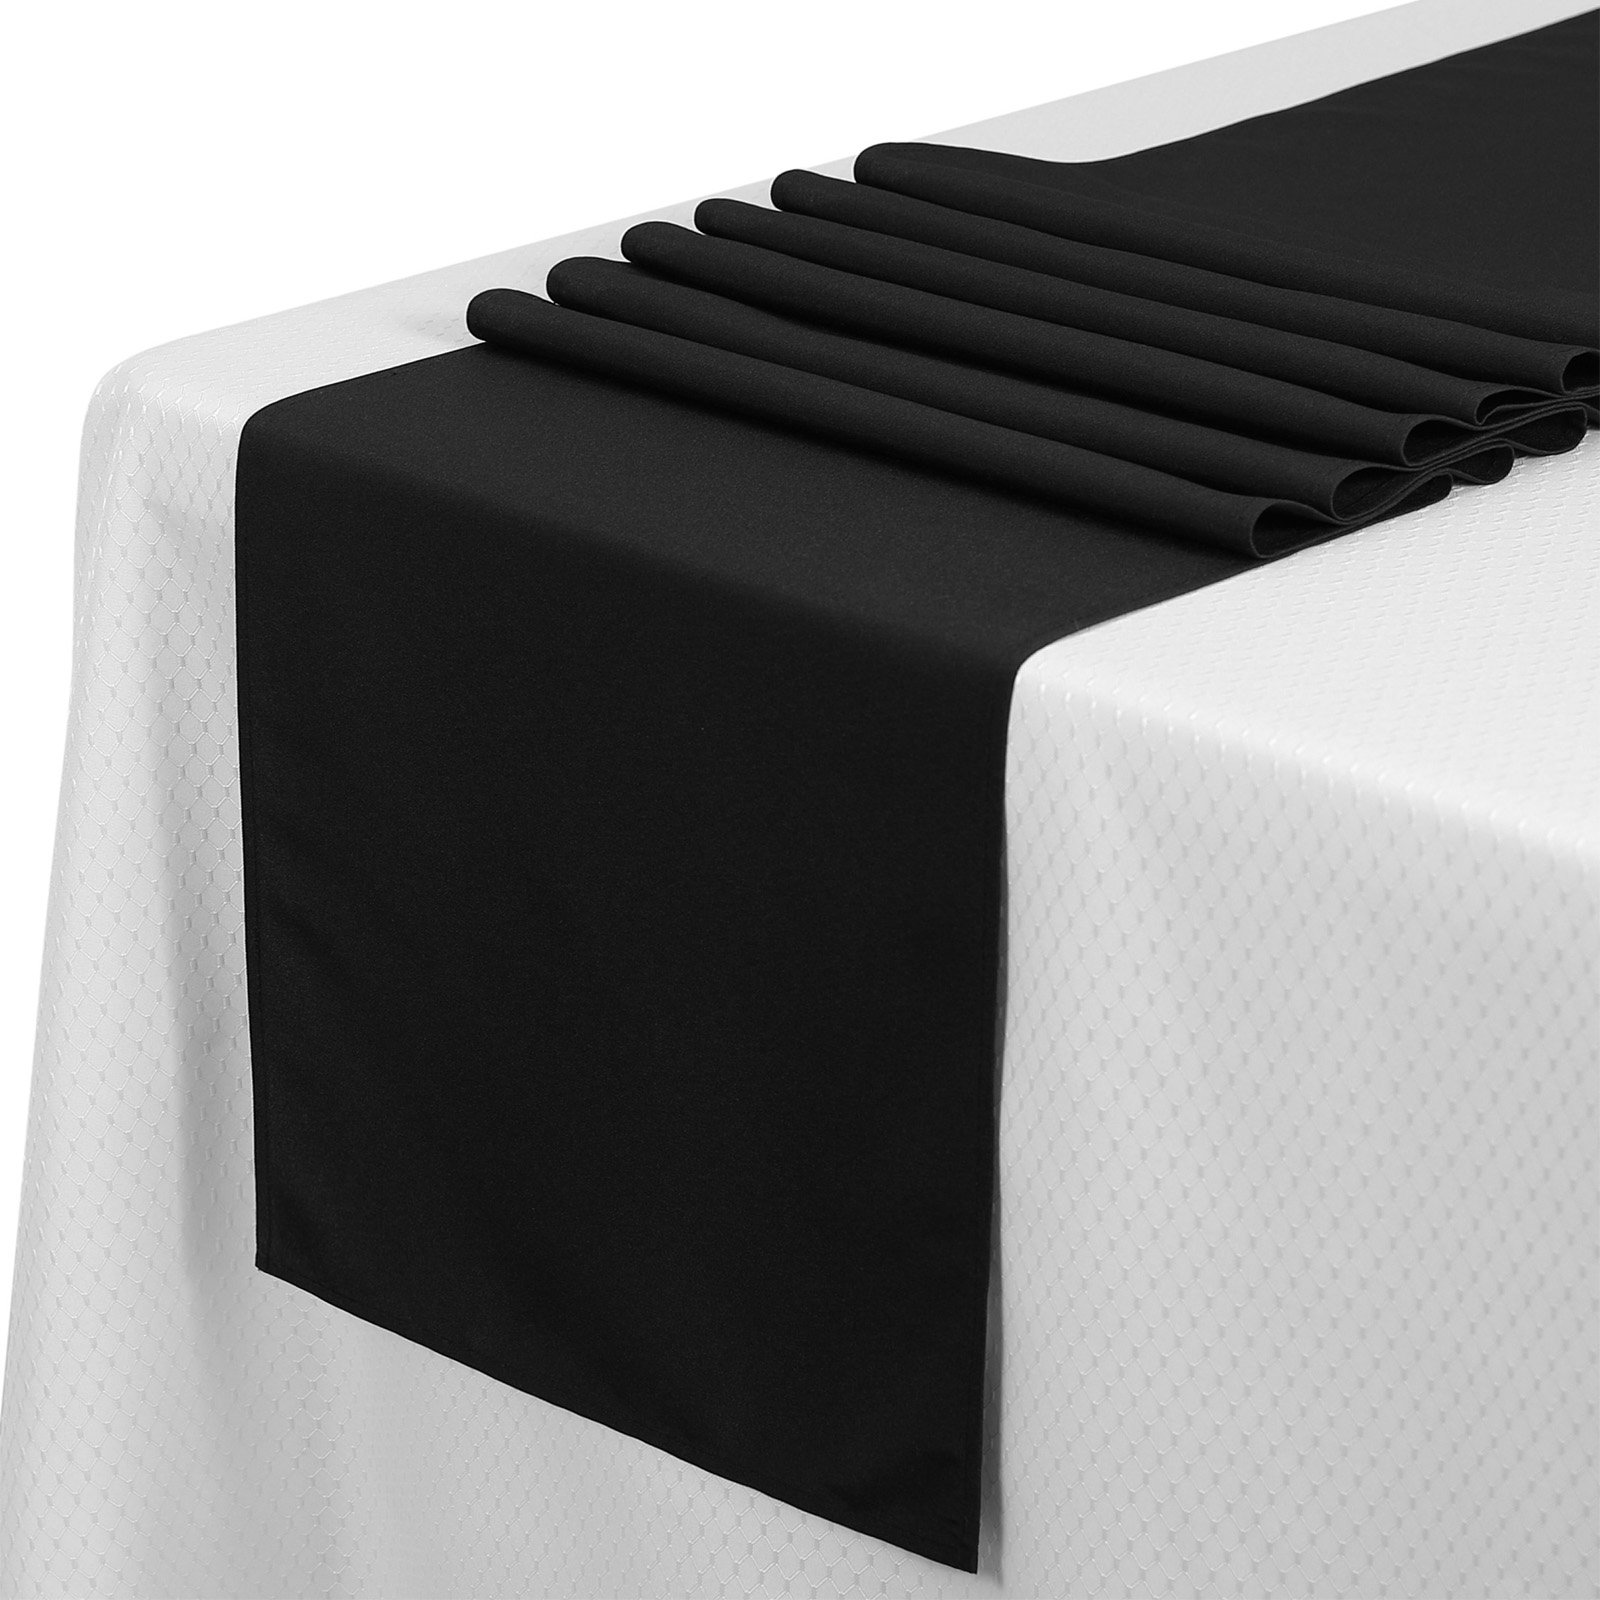 VEEYOO 10 Pieces 14x108 inch Polyester Table Runner for Restaurant Kitchen Dining Wedding Party Banquet Events, Black